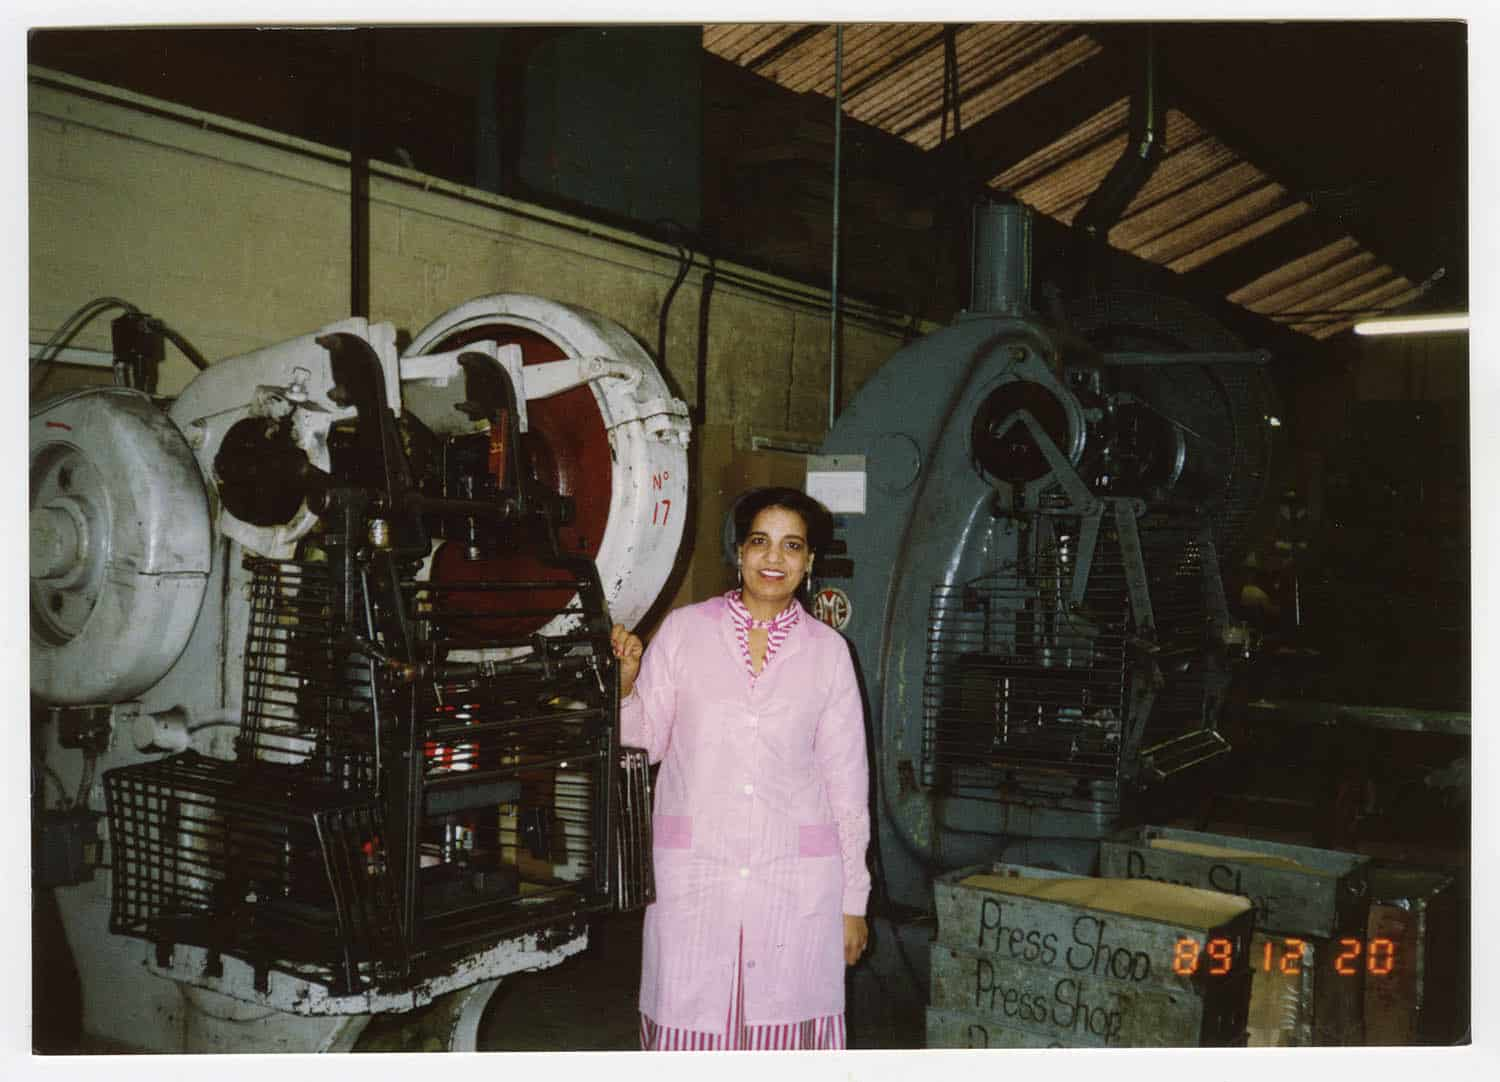 Ravinder Kaur Chana on the press shop work floor at Benjamin Parkes & Son Ltd where she made tool boxes c1989.